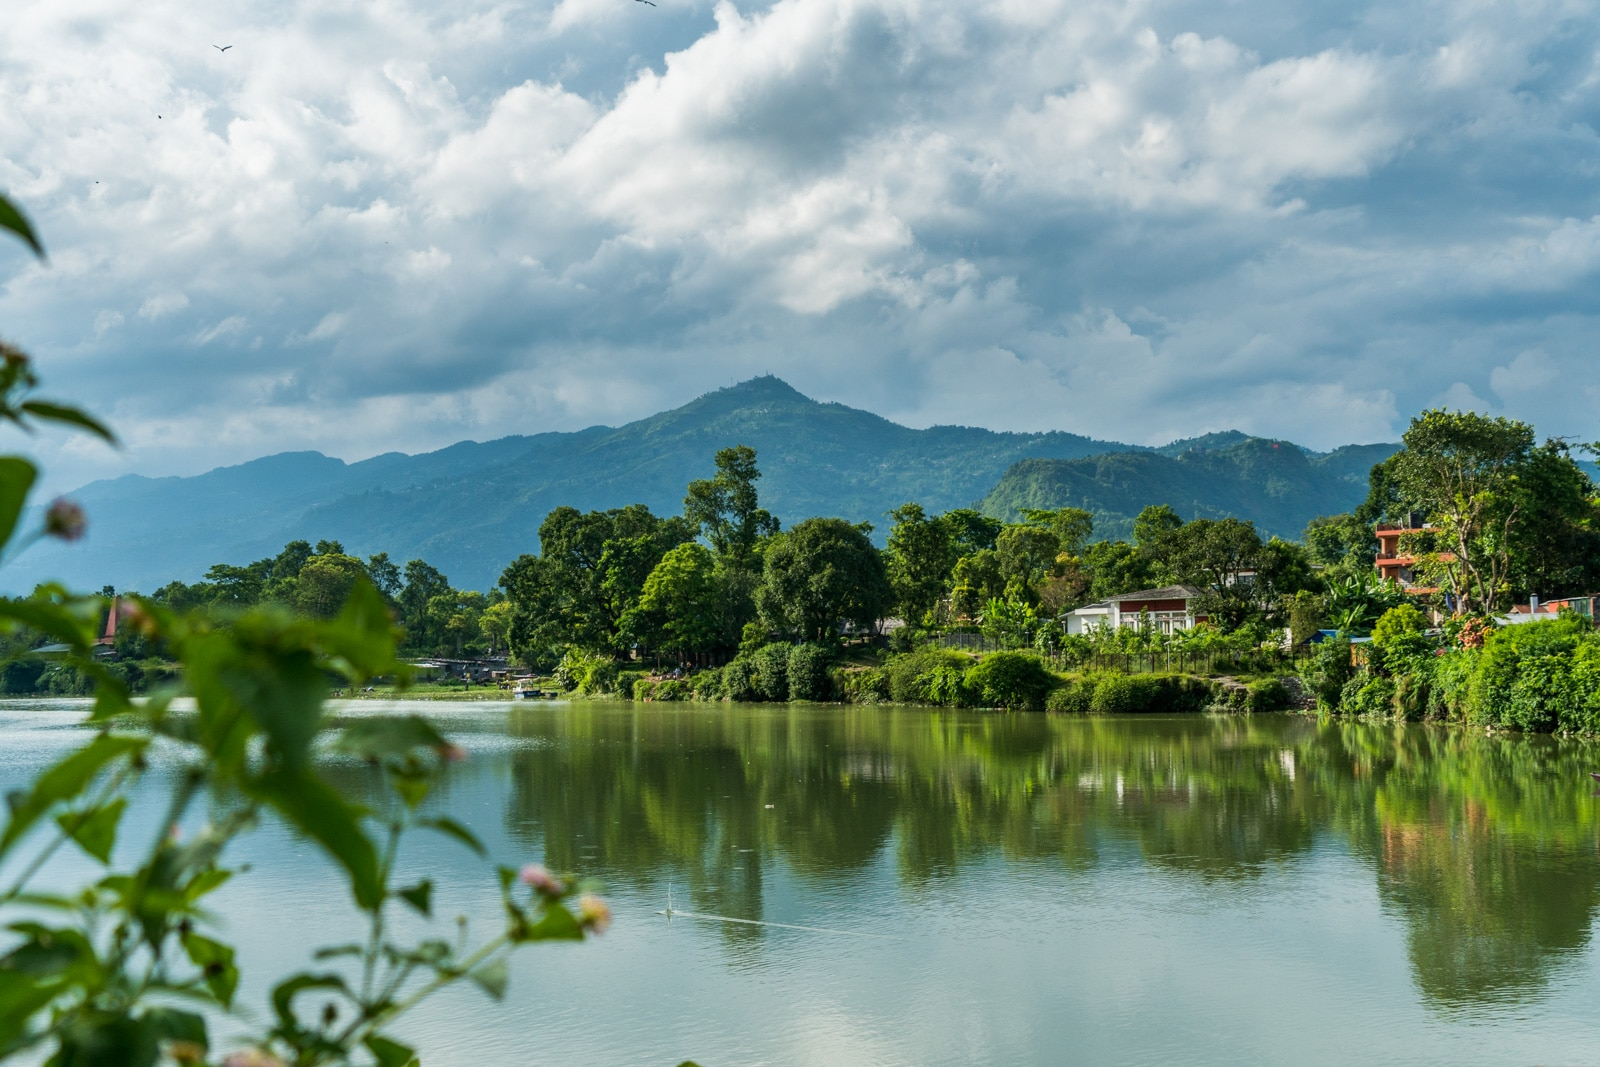 Travel in Nepal during monsoon - Clouds over Phewa Lake in Pokhara - Lost With Purpose